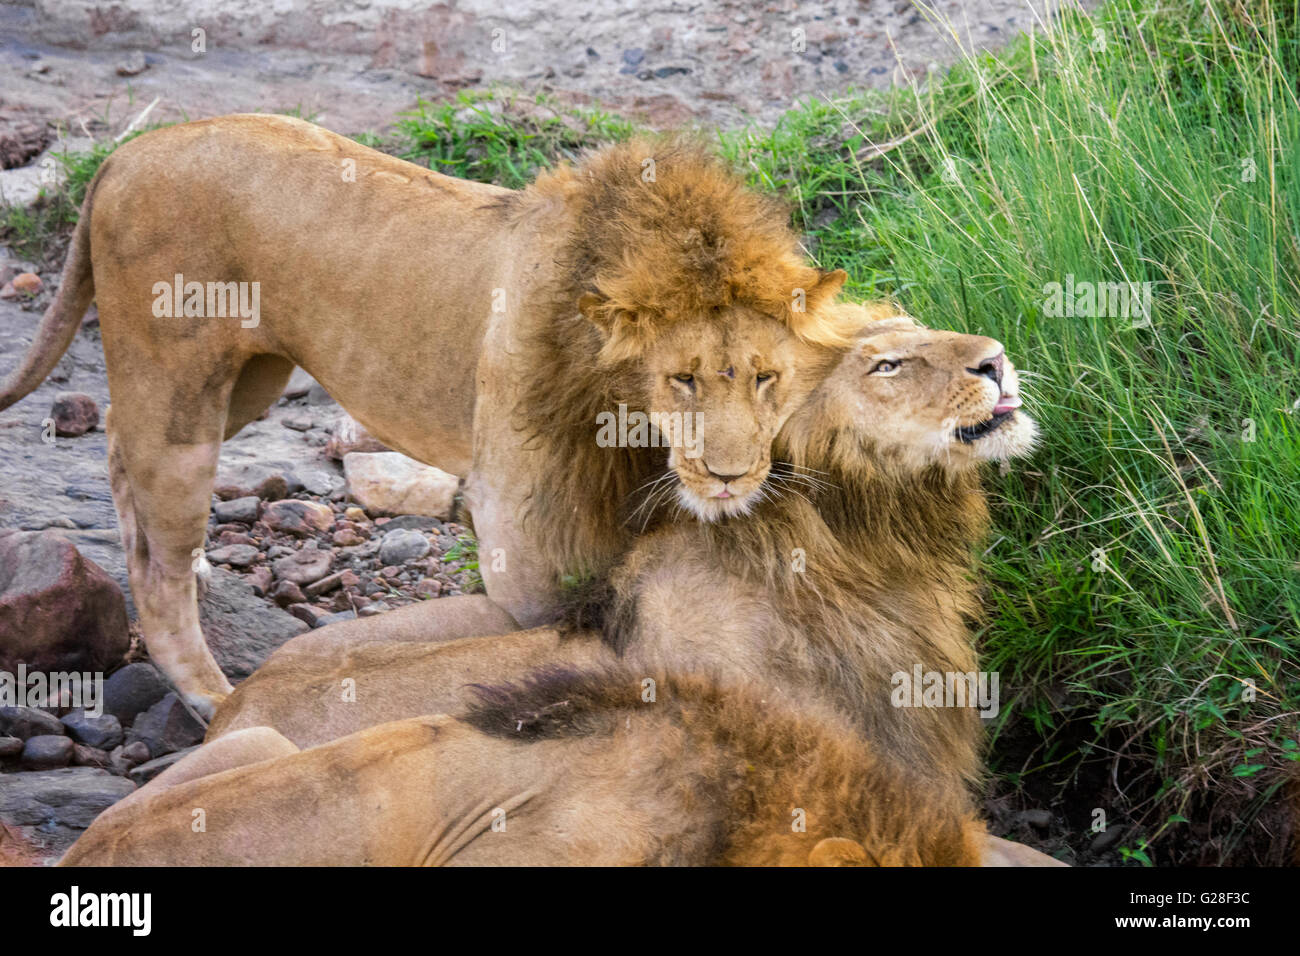 Male African Lions, Panthera leo, showing affection, Masai Mara National Reserve, Kenya, Africa - Stock Image